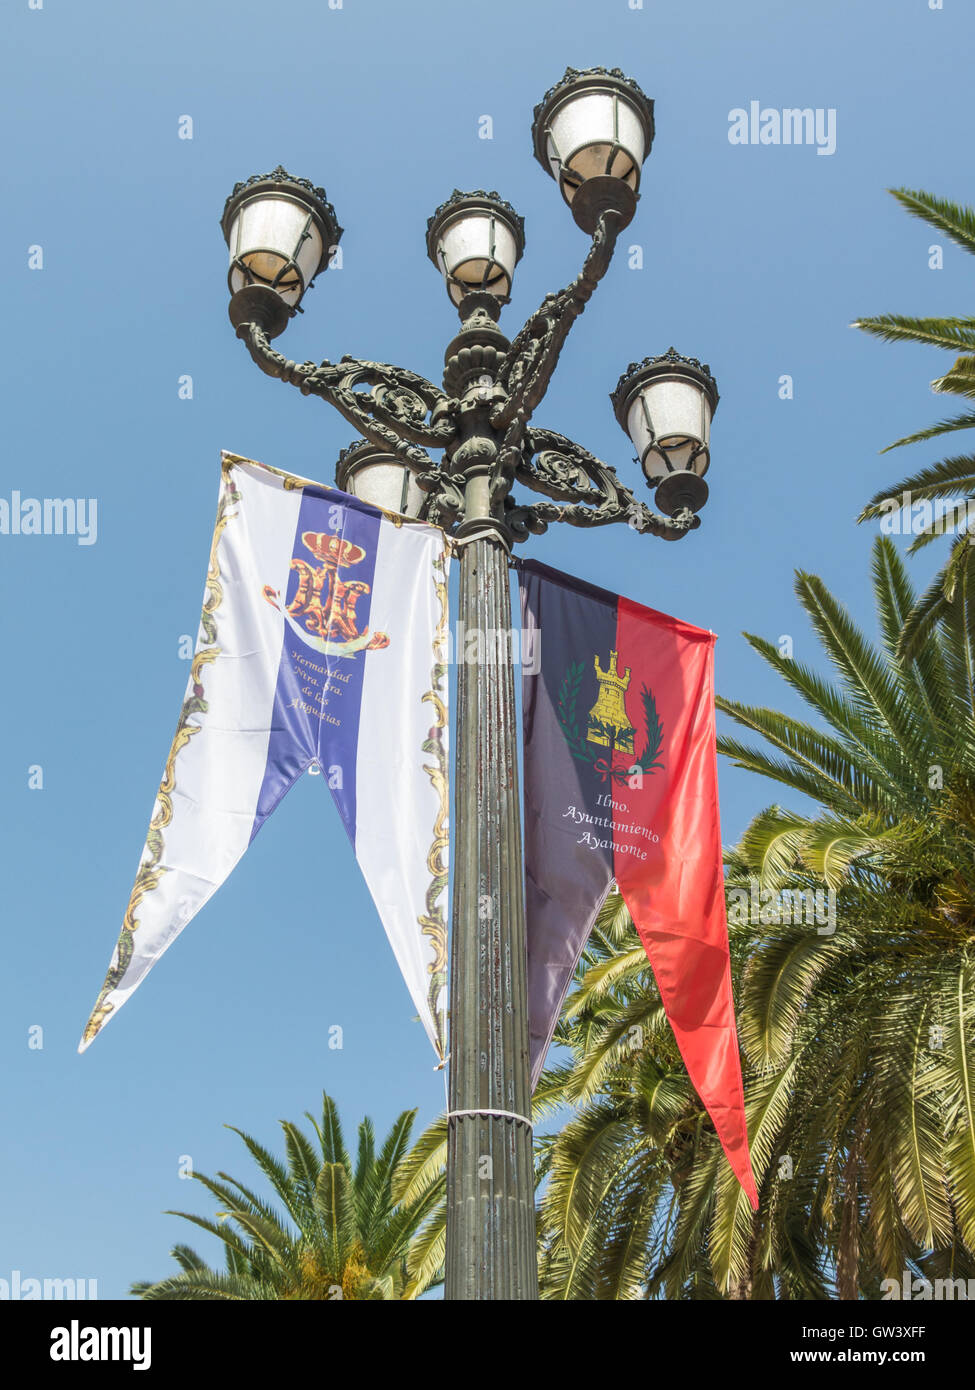 AYAMONTE, SPAIN - SEP 4 2016  Banners hung on lamposts in honor of the town and marking The Angustias Festival - Stock Image